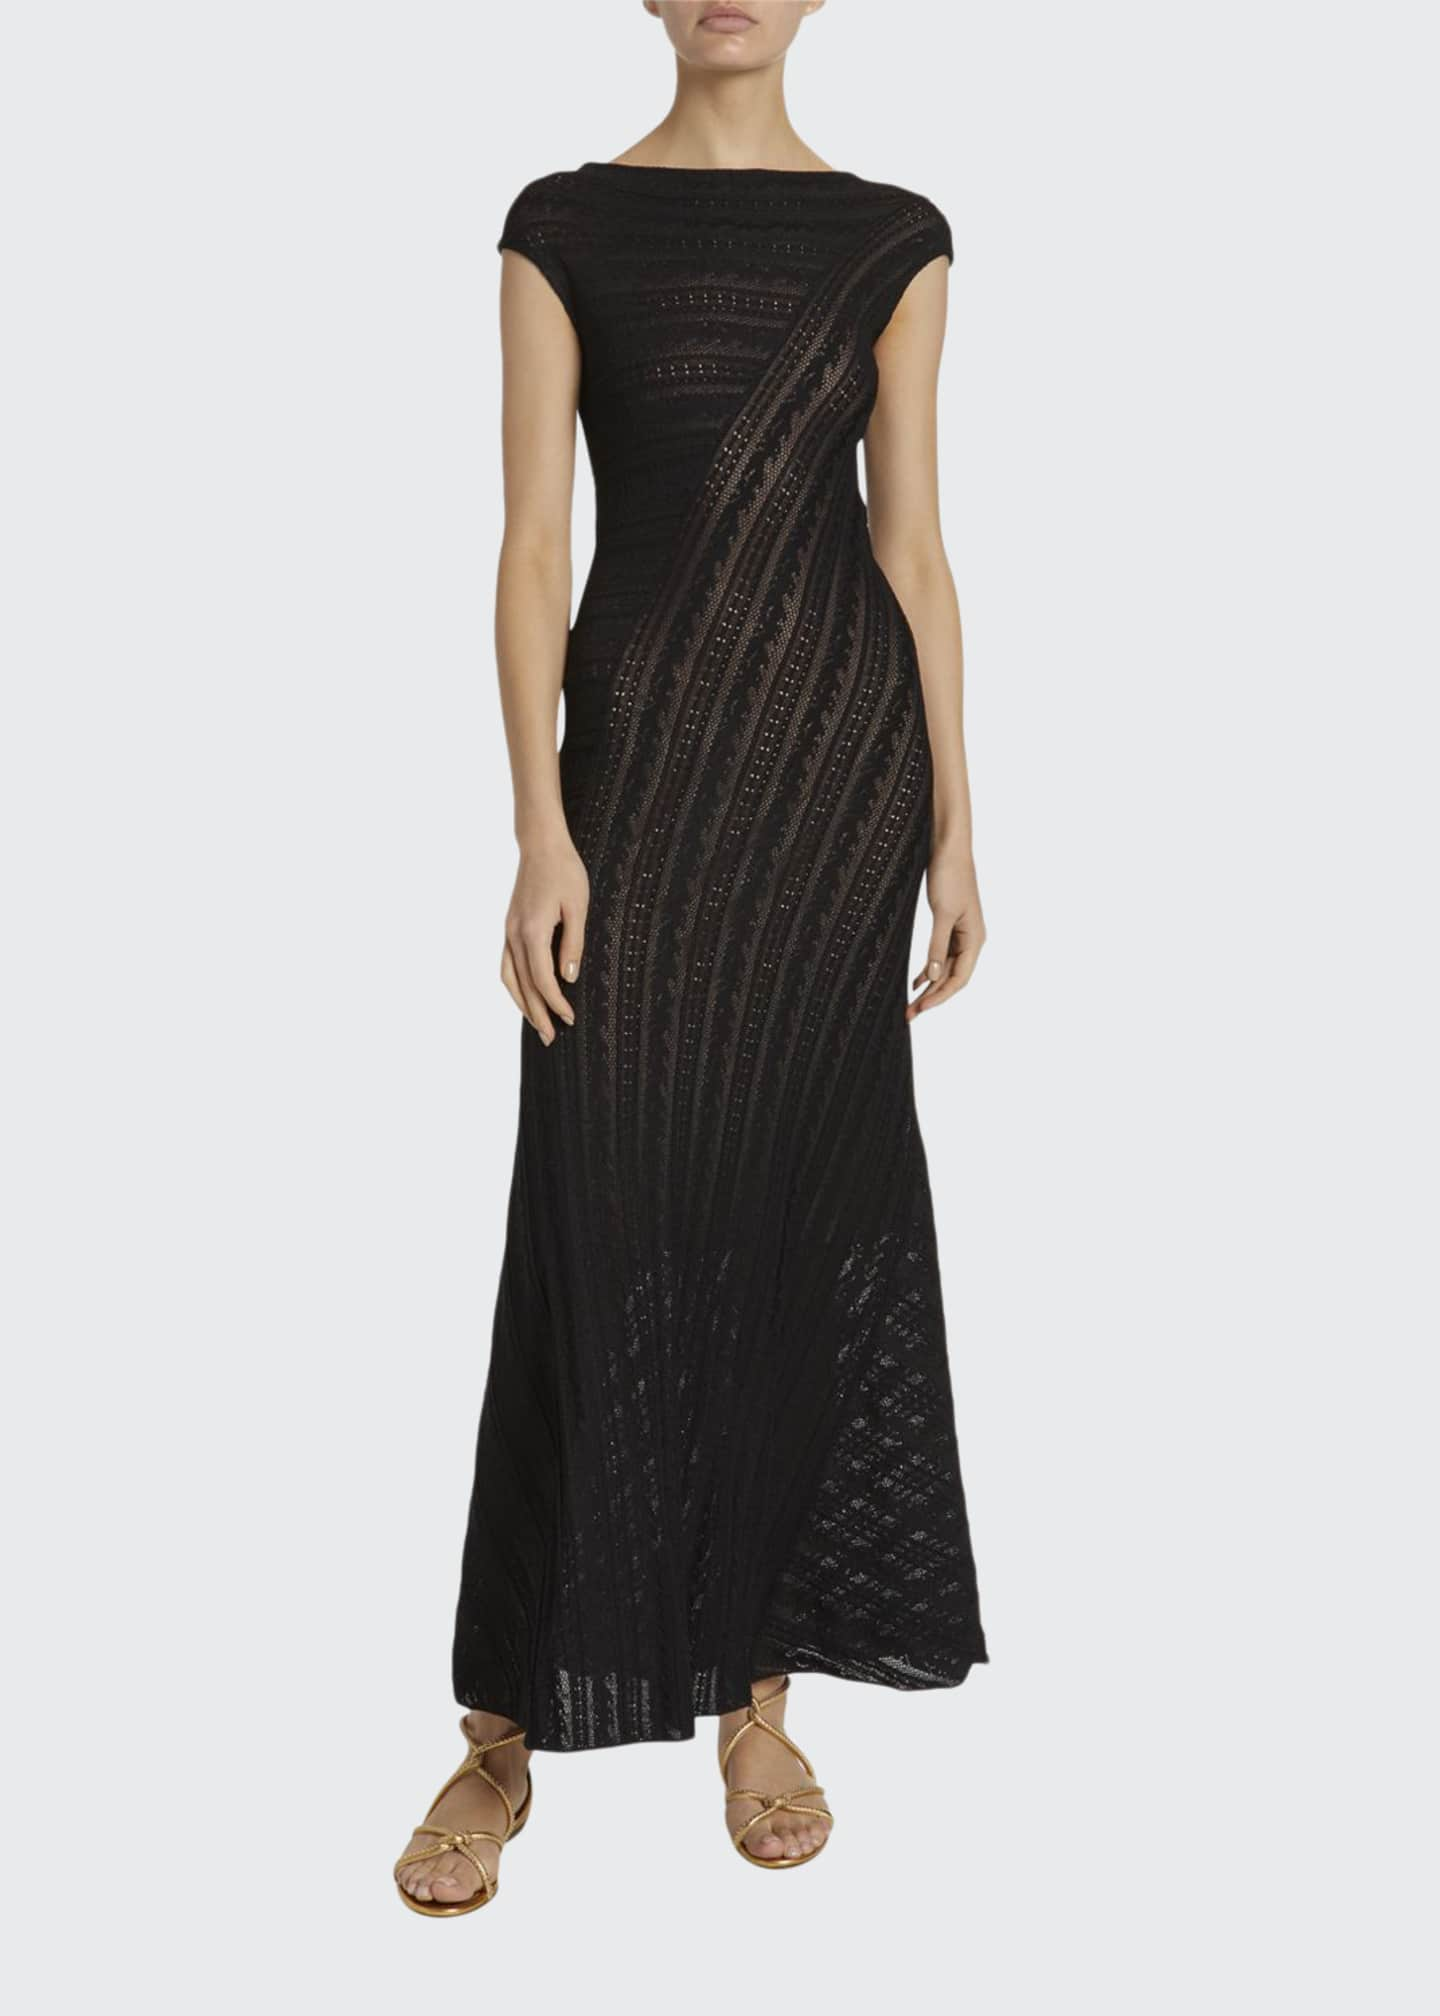 ALAIA Lace-Striped Cap-Sleeve Midi Dress